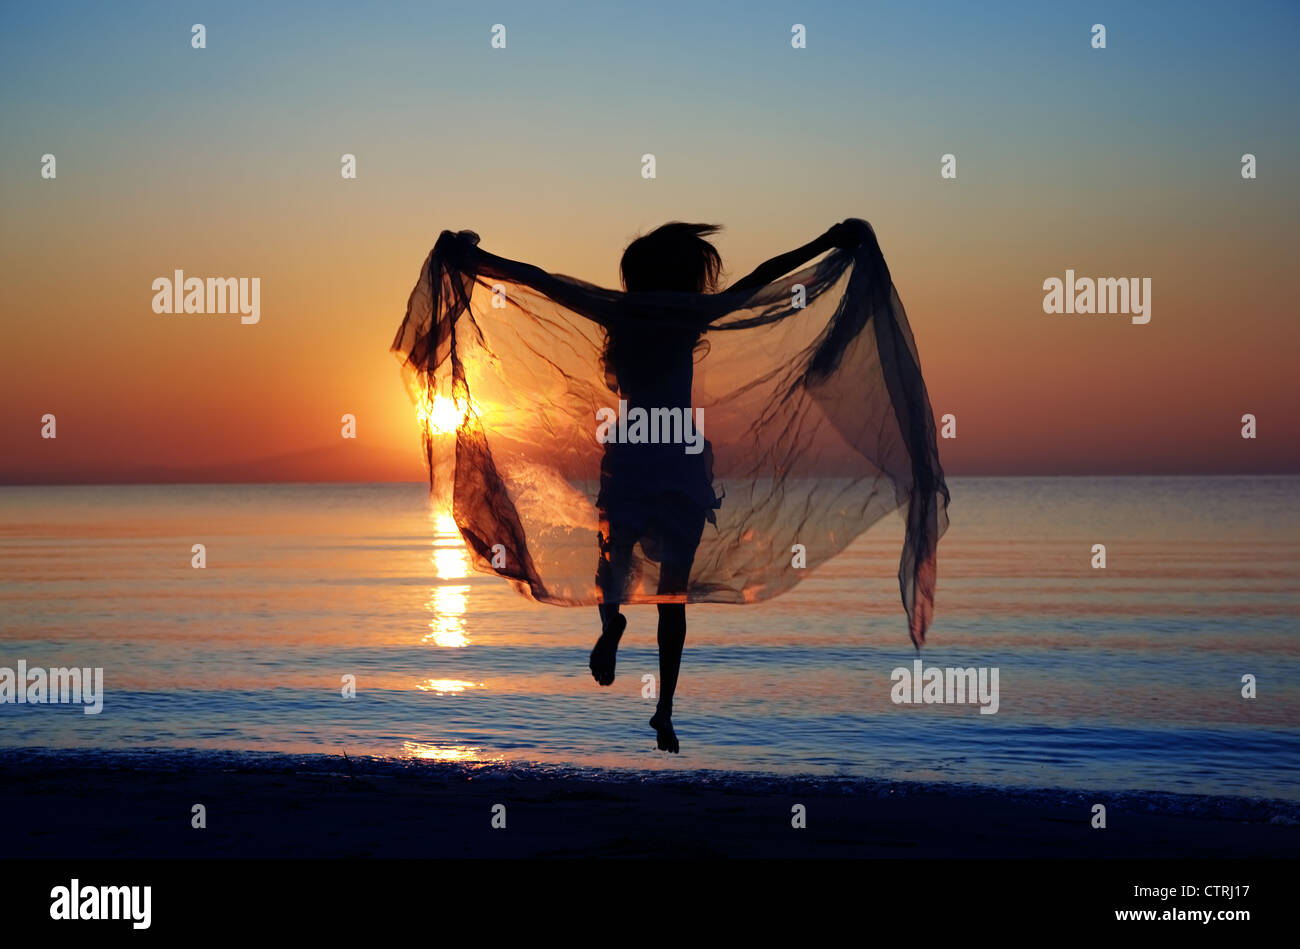 Rear view on the silhouette of the woman jumping at the beach during sunset. Natural darkness and colors - Stock Image